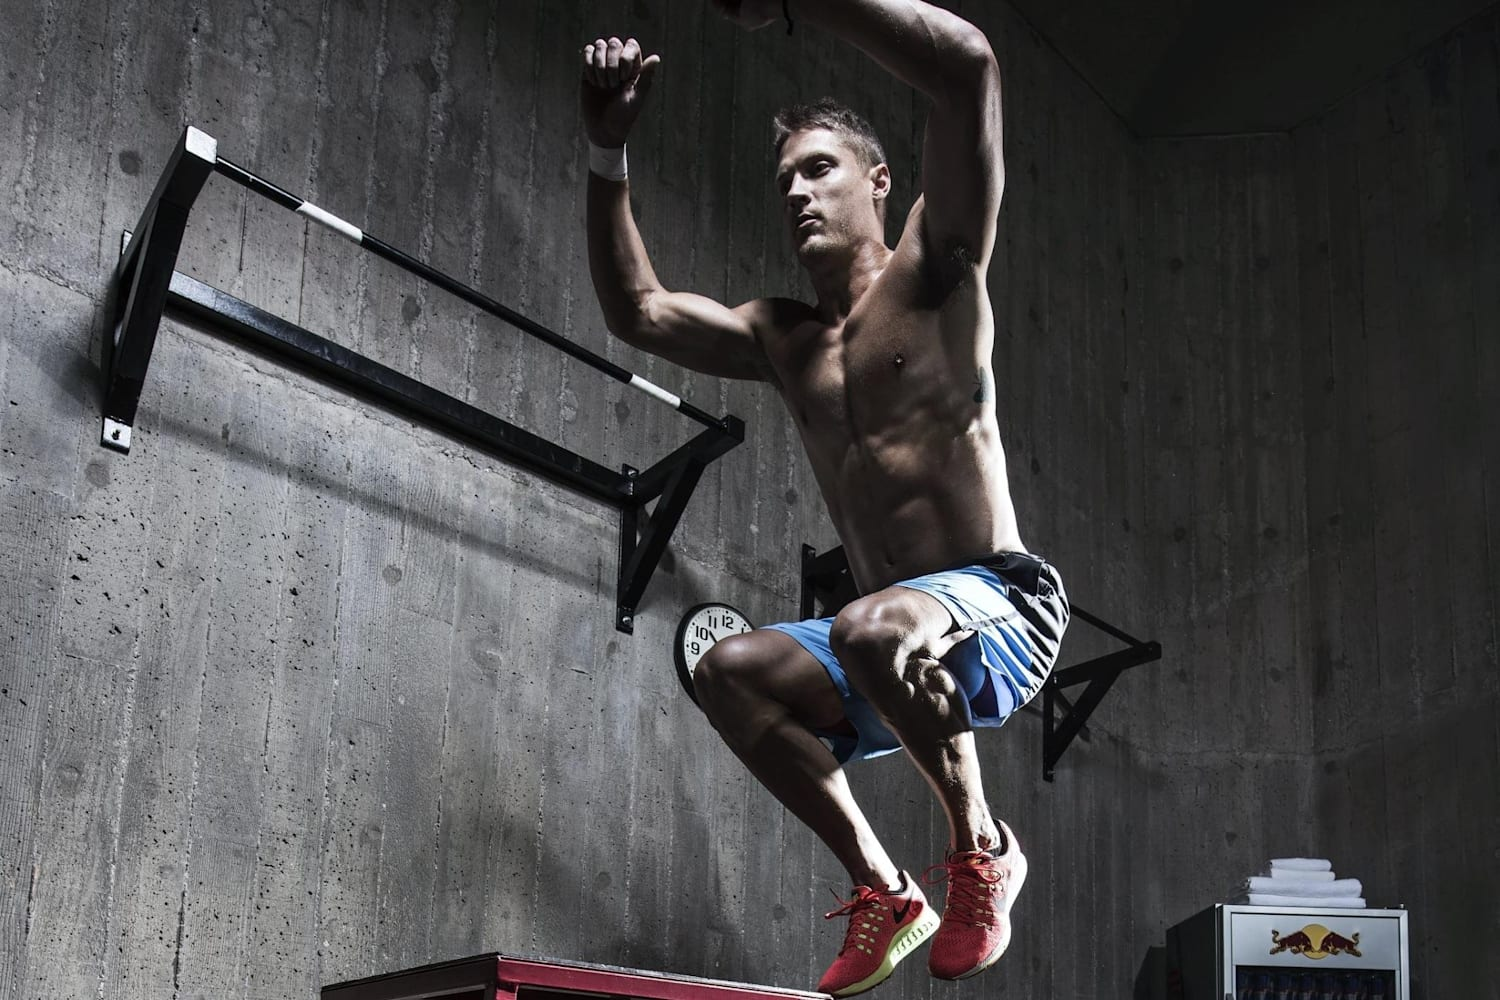 Chaos Training: the best gym workout you've never heard of